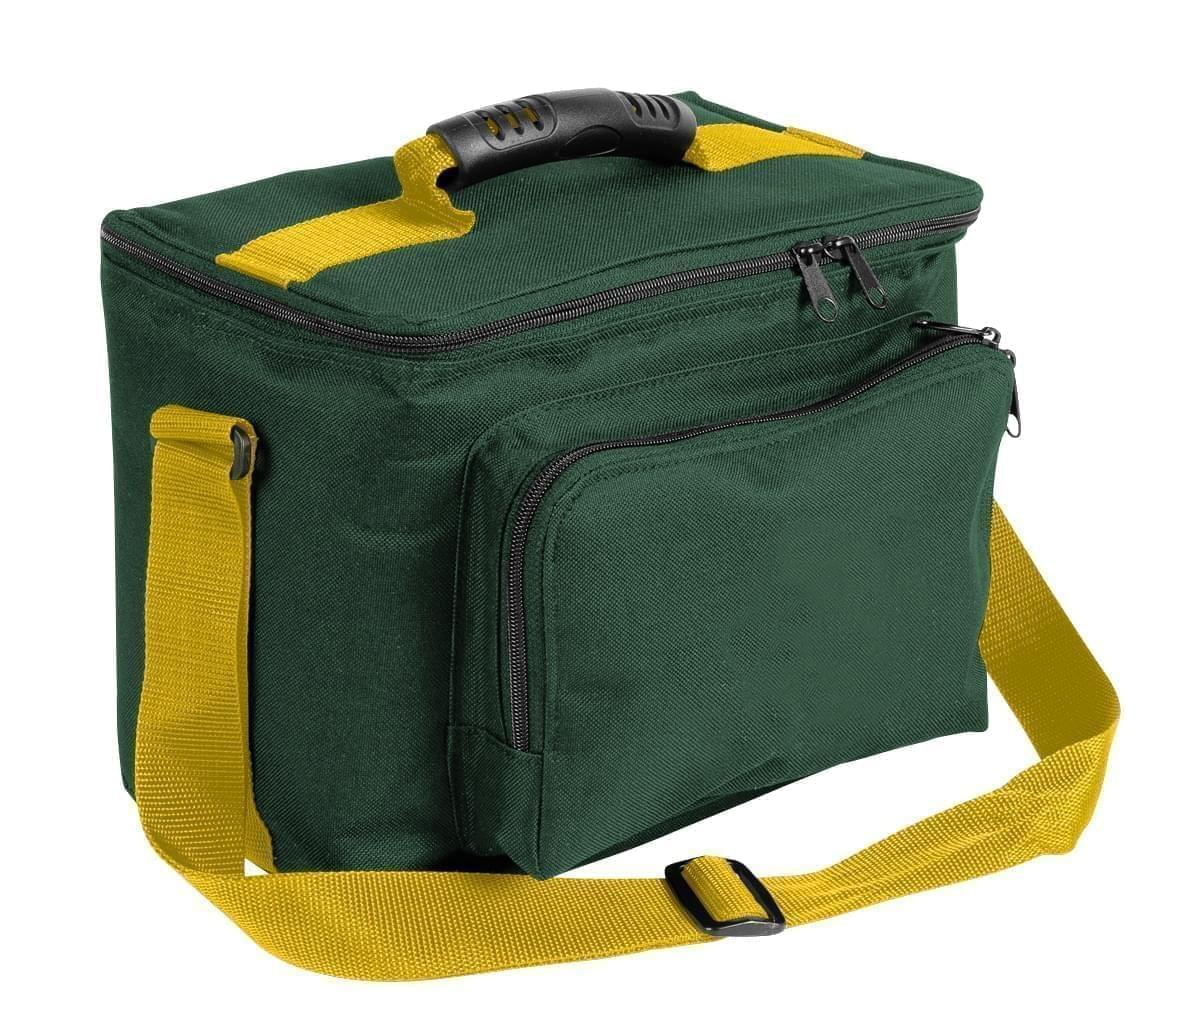 USA Made Nylon Poly Lunch Coolers, Hunter Green-Gold, 11001161-AS5